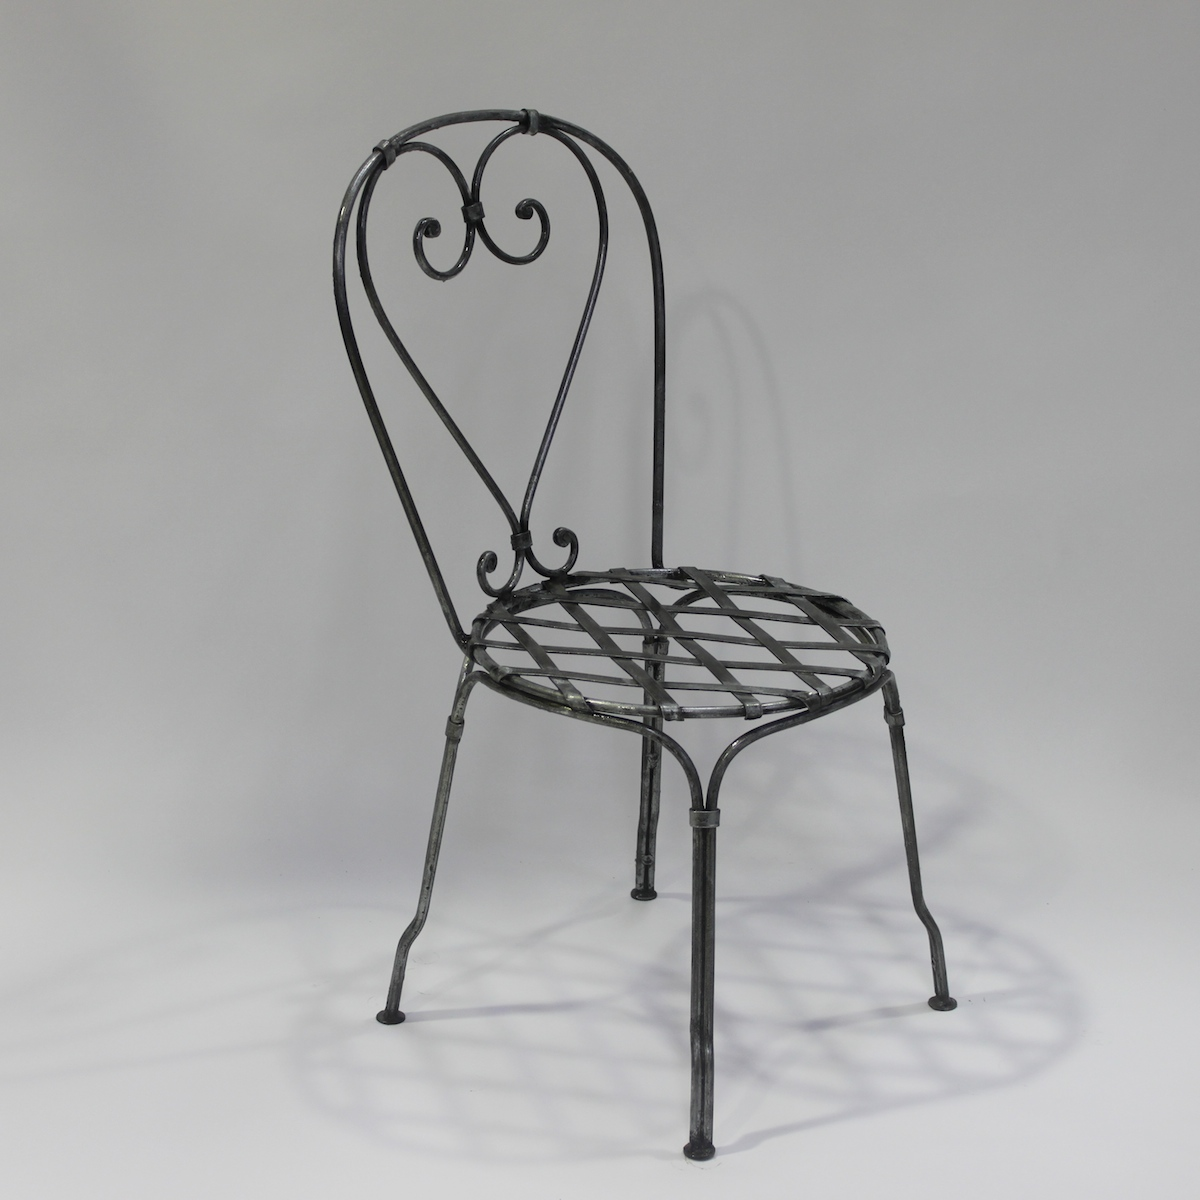 furniture metal. Chair French Steel Le Forge Bistro Furniture Metal A